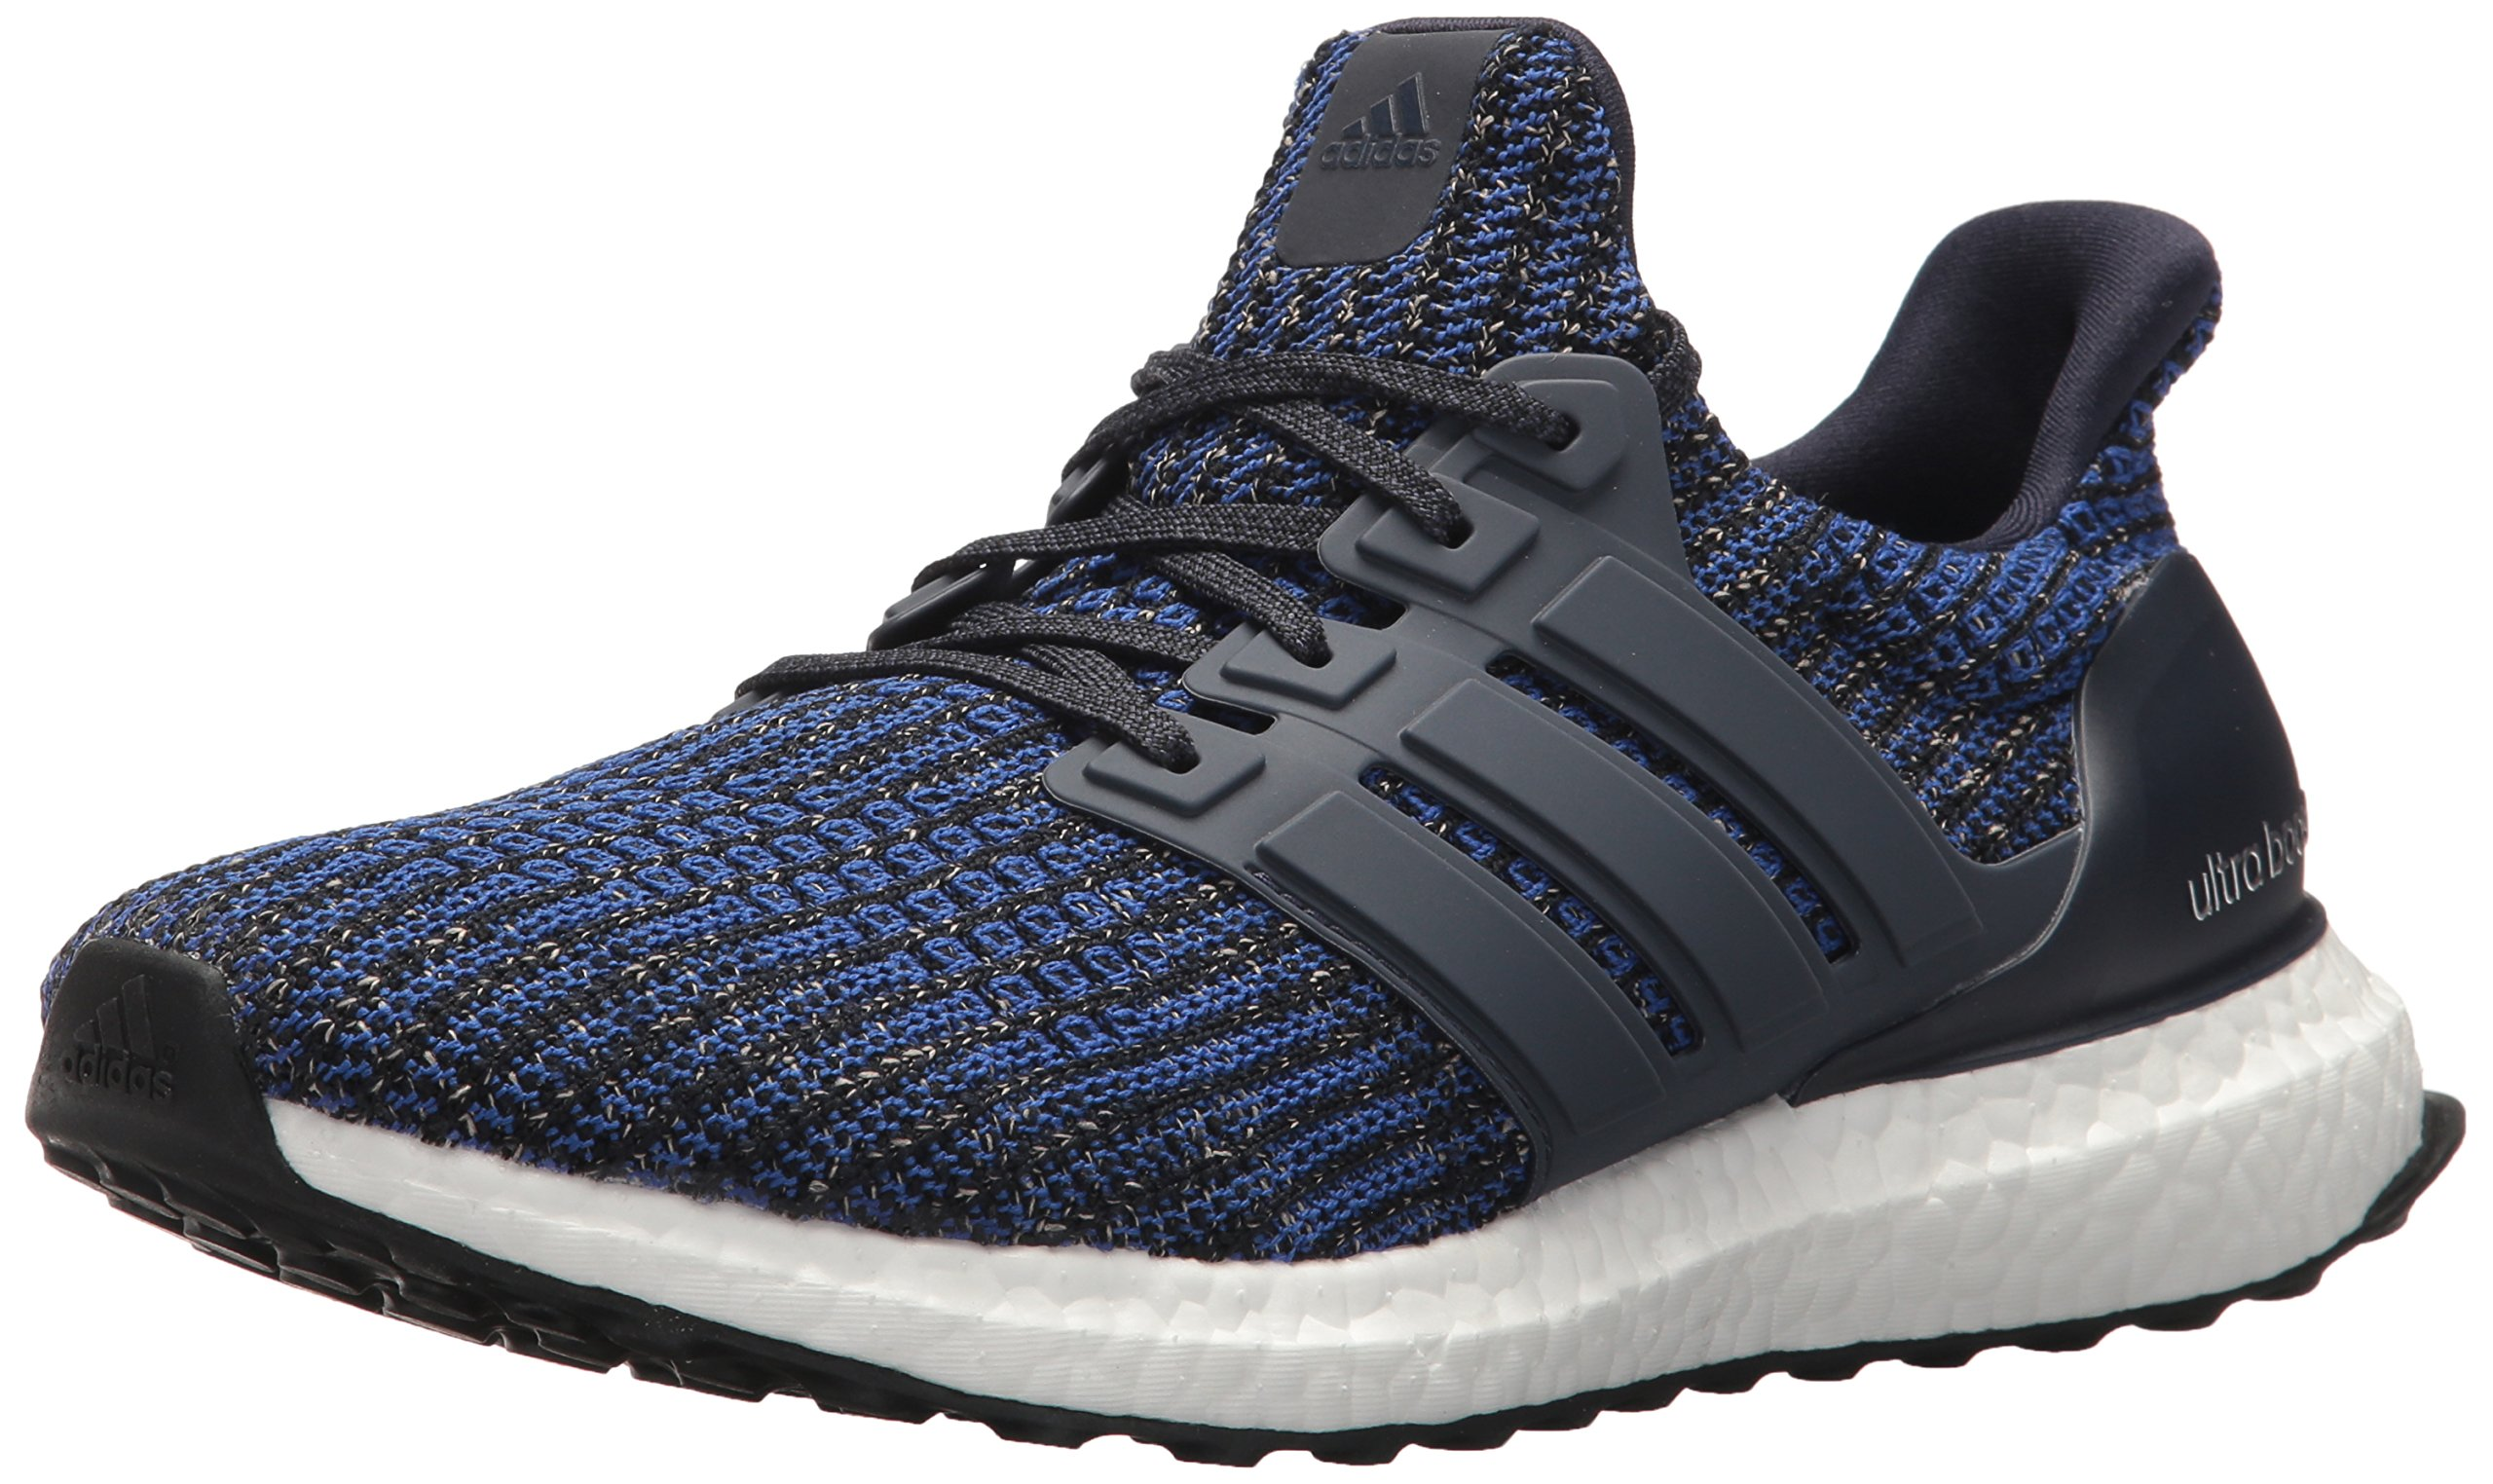 adidas Men's Ultraboost Road Running Shoe, Carbon/Legend Ink/Core Black, 6.5 M US by adidas (Image #1)